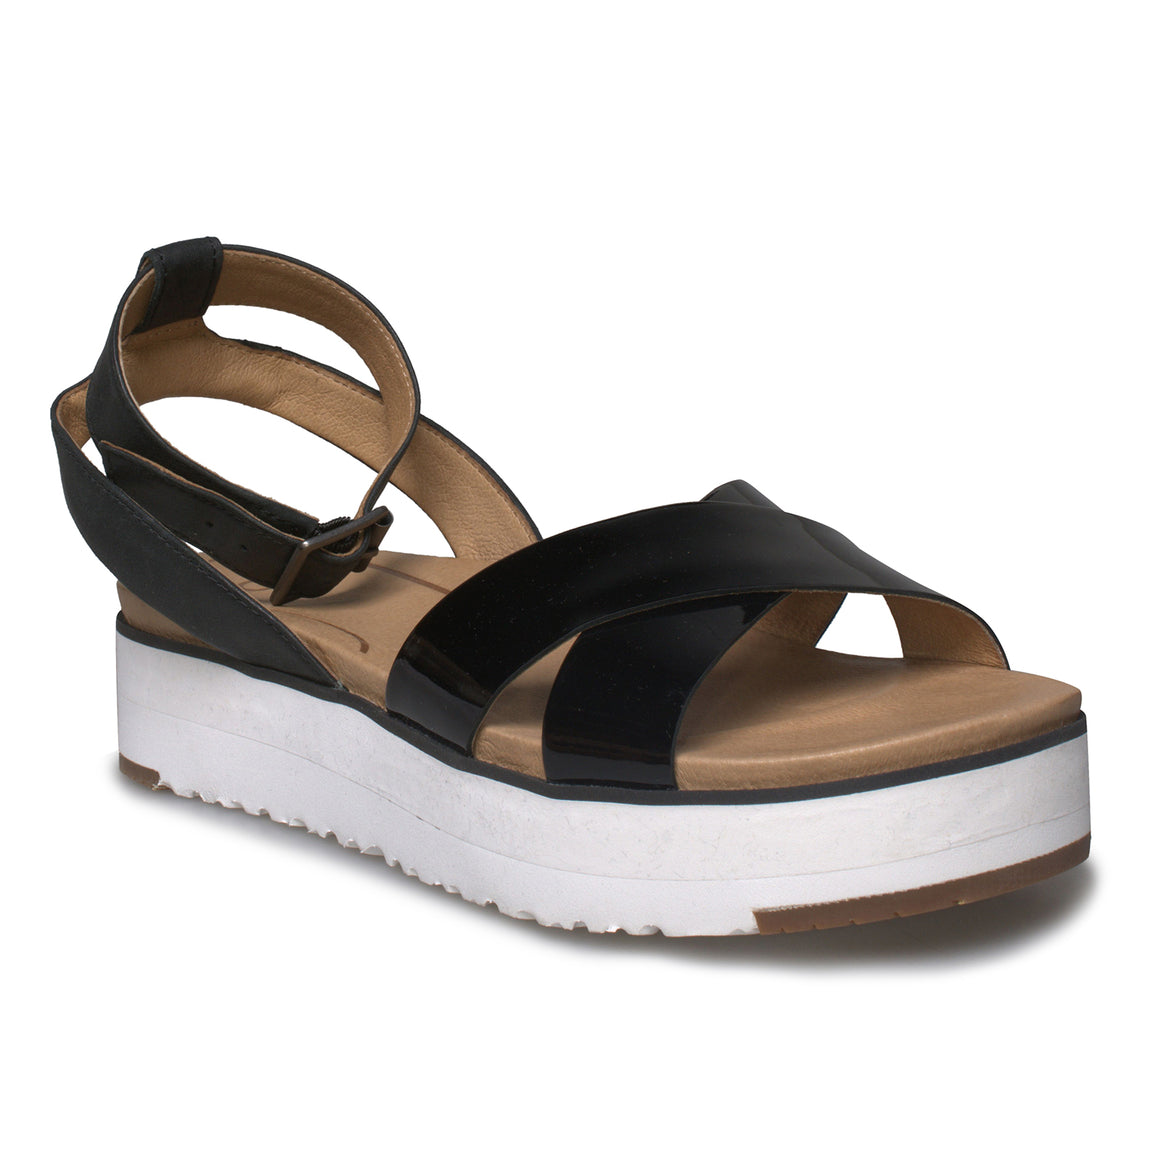 UGG Tipton Black Sandals - Women's